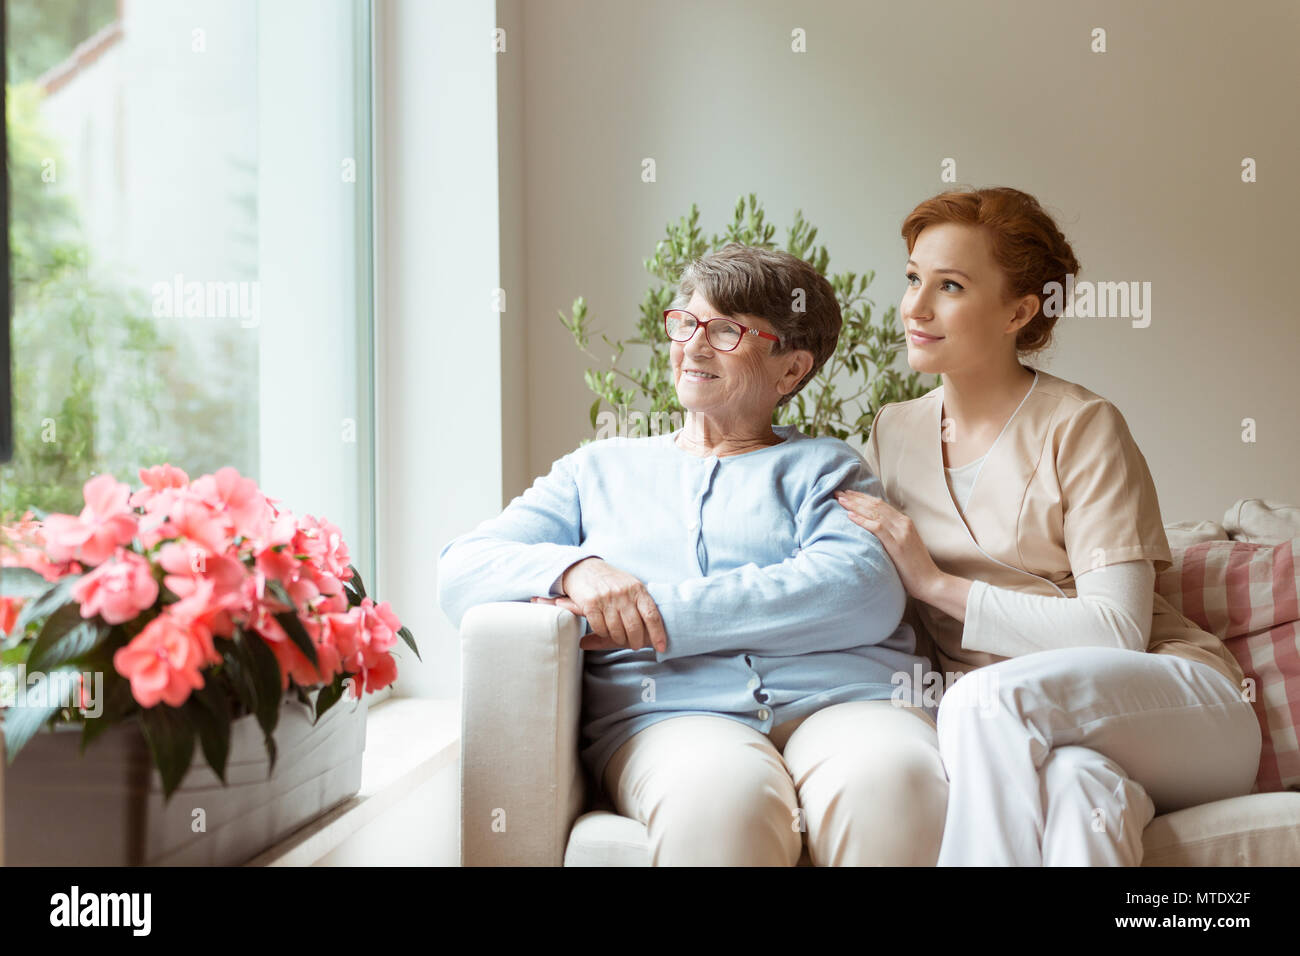 Geriatric woman and her professional caretaker sitting on a couch and looking through a window in a living room. Blooming flowers on a windowsill. - Stock Image